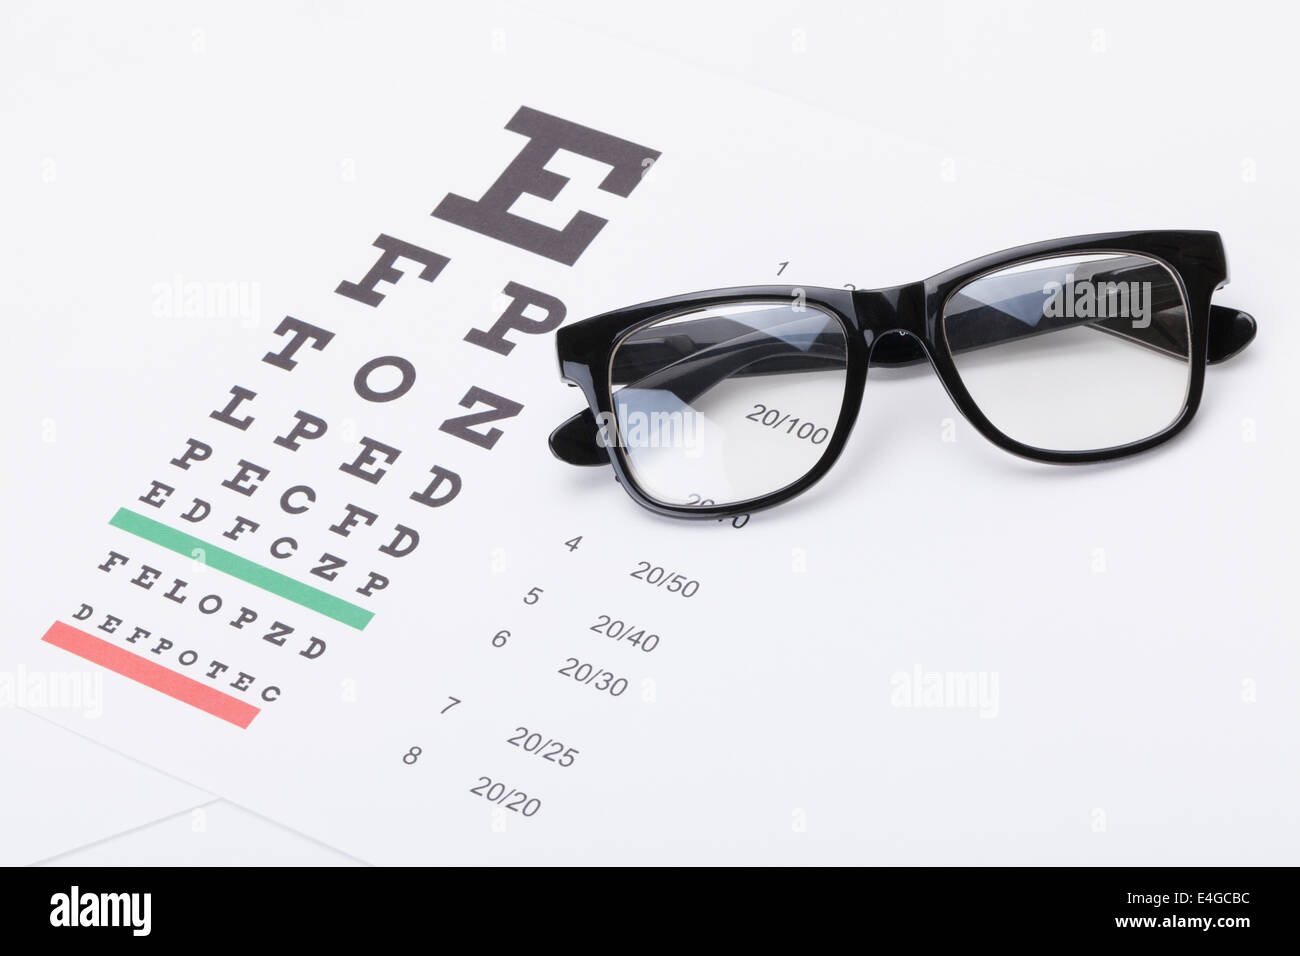 Table for eyesight test with glasses over it - studio shot Stock Photo